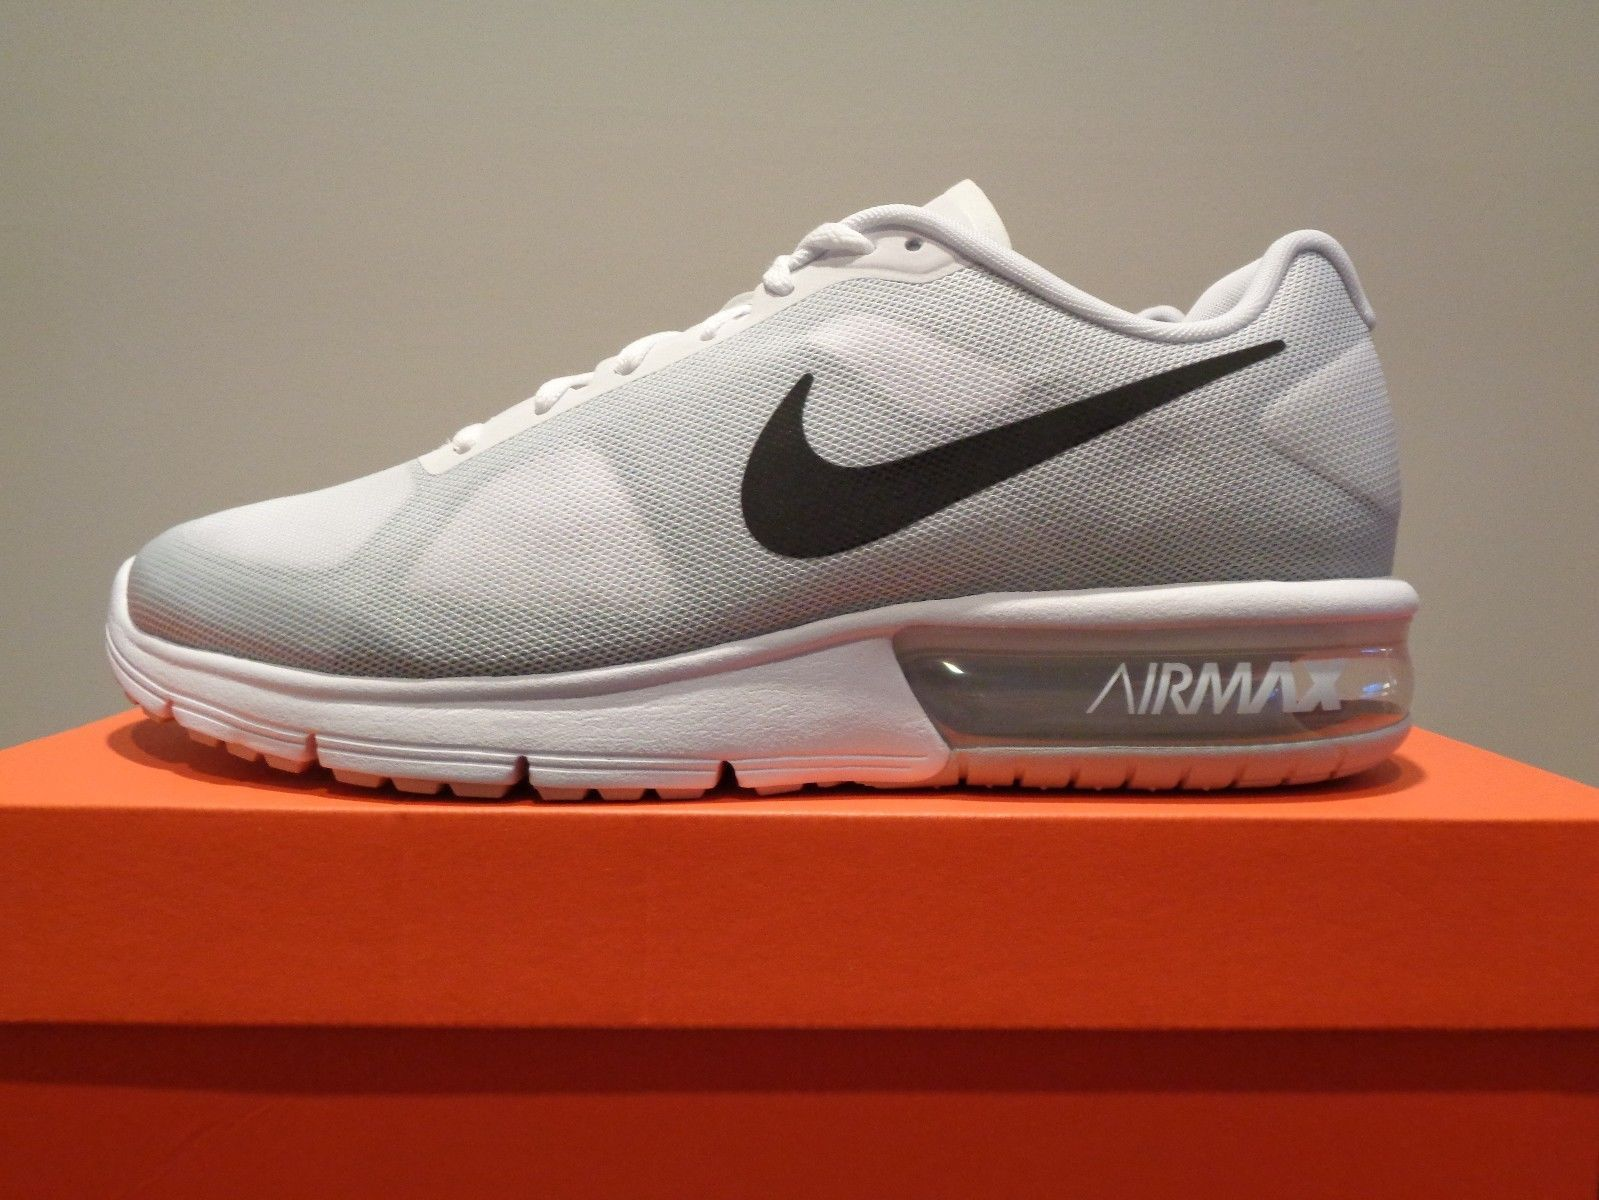 NIKE AIR MAX SEQUENT MEN'S SZ 11.5 RETAIL PRICE $100.00 STYLE # 719912-100